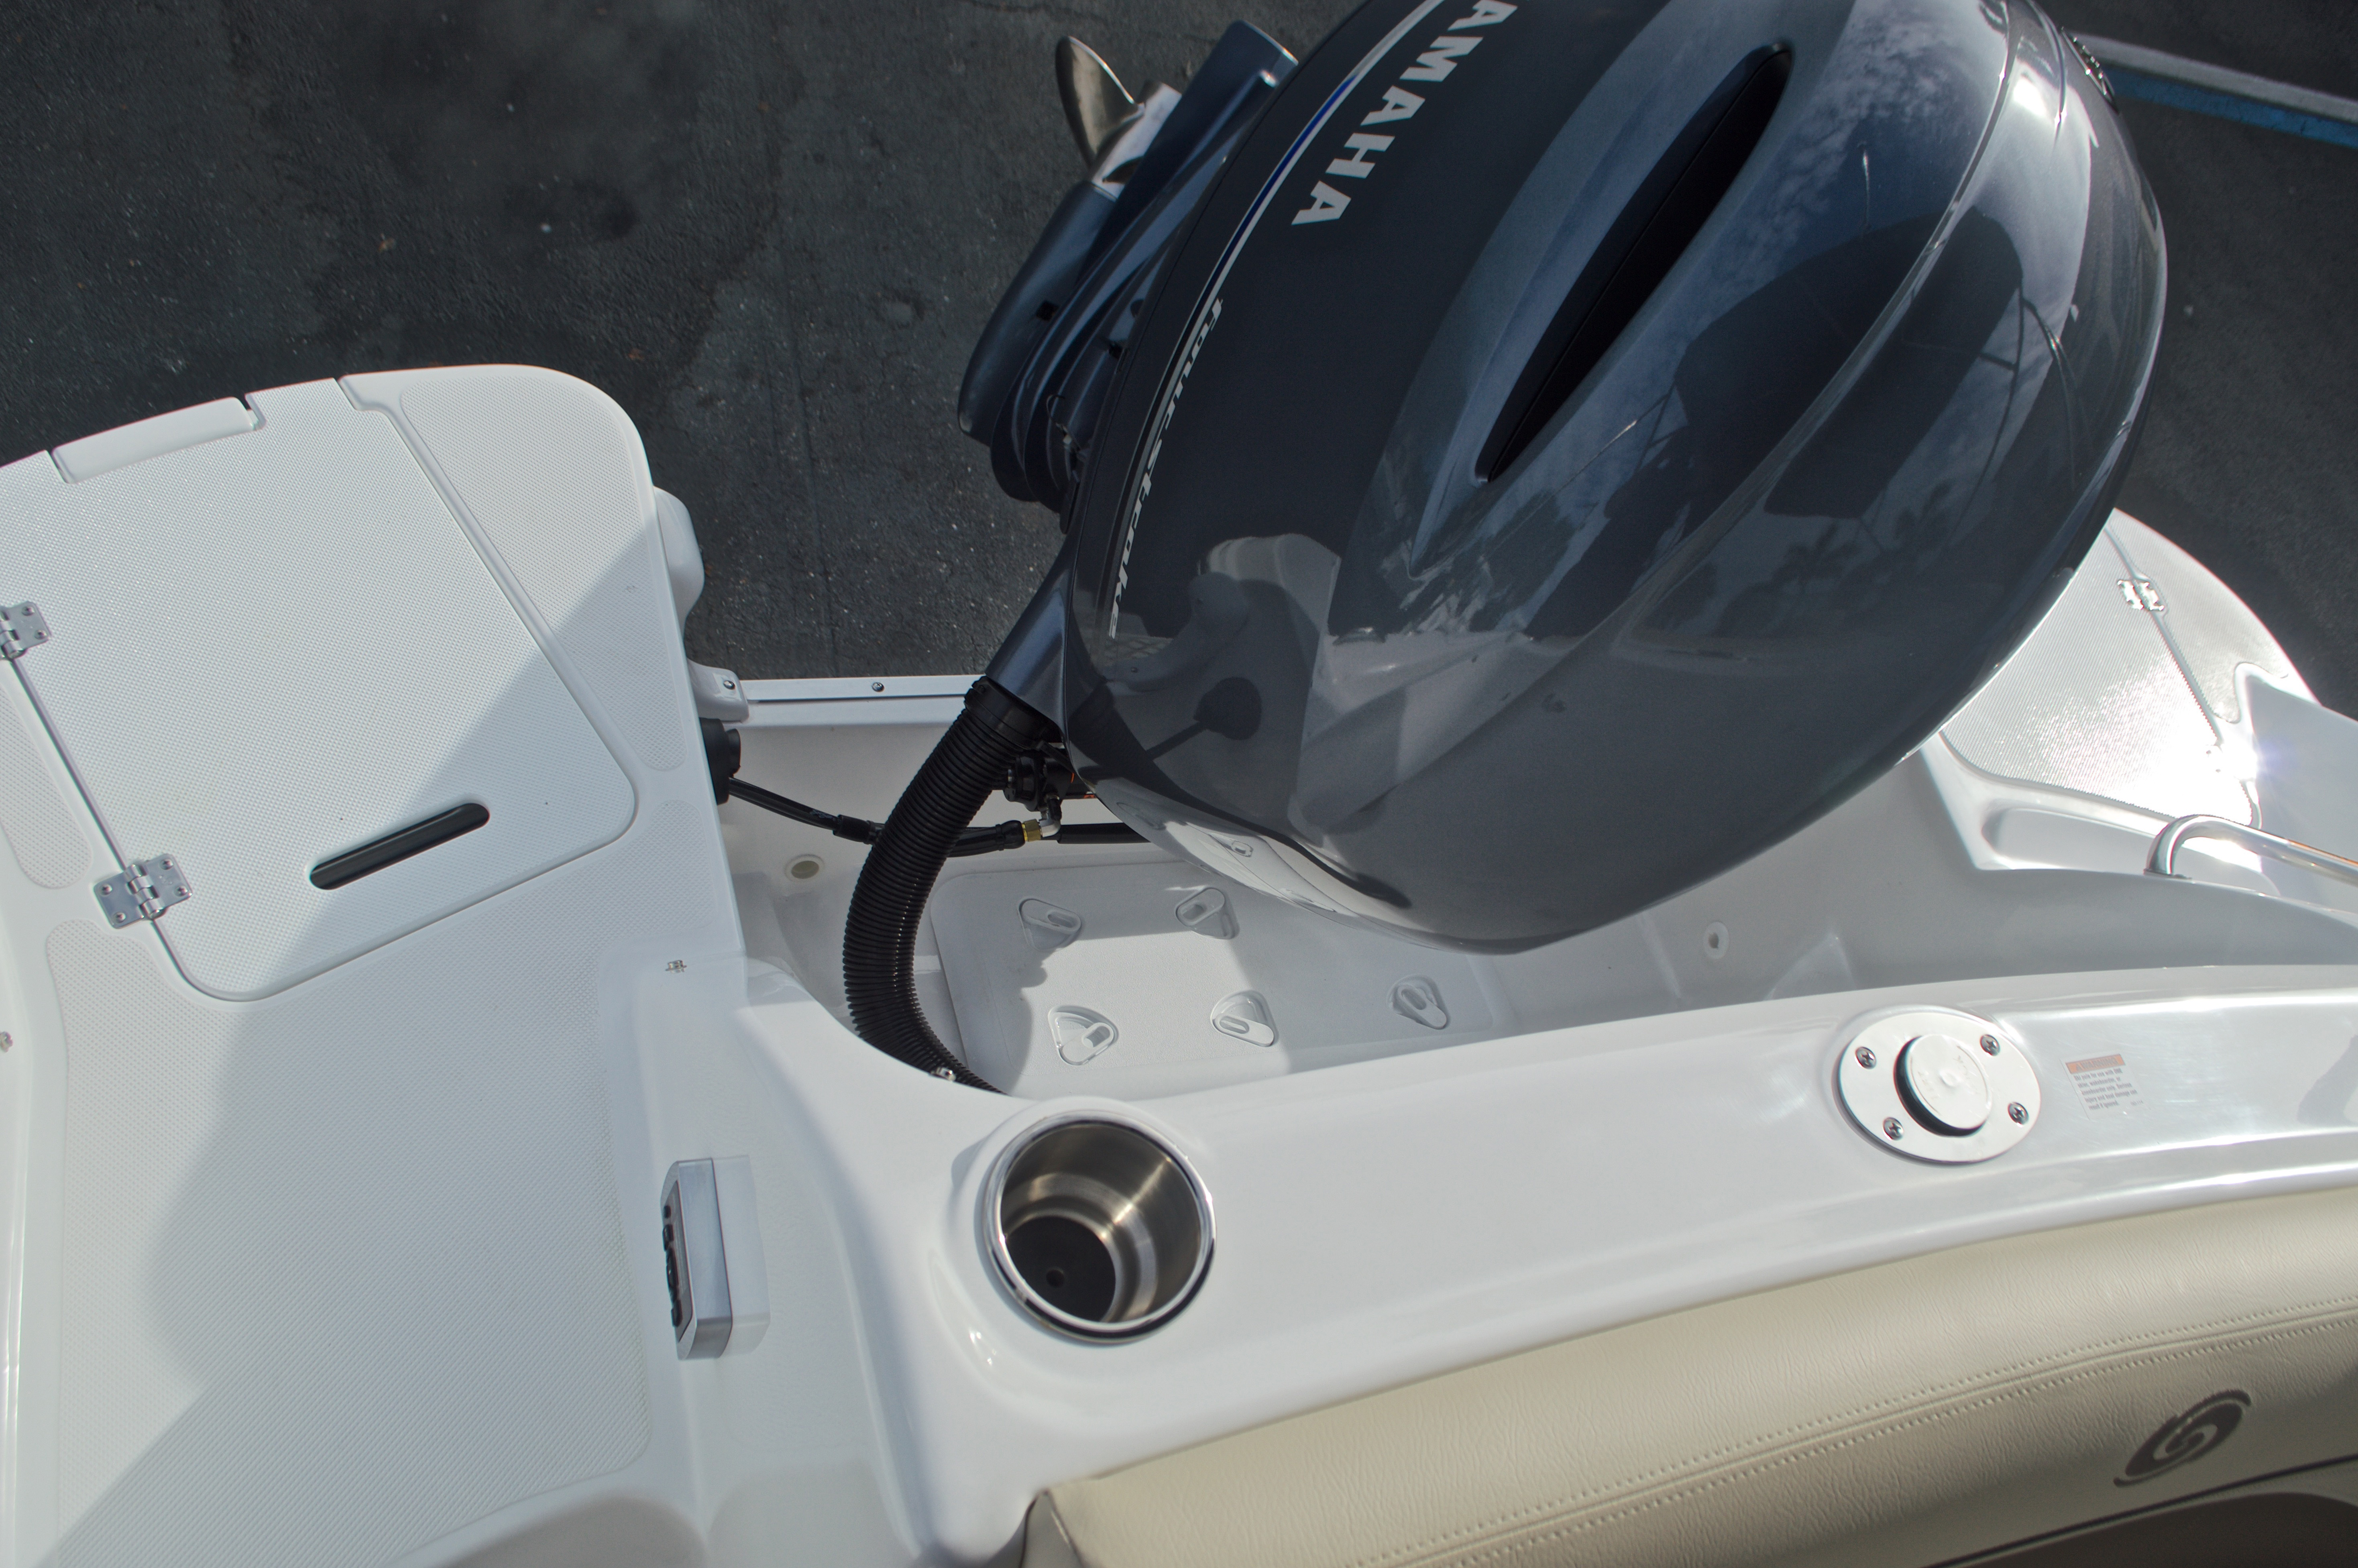 Thumbnail 15 for New 2017 Hurricane SunDeck SD 2200 DC OB boat for sale in West Palm Beach, FL